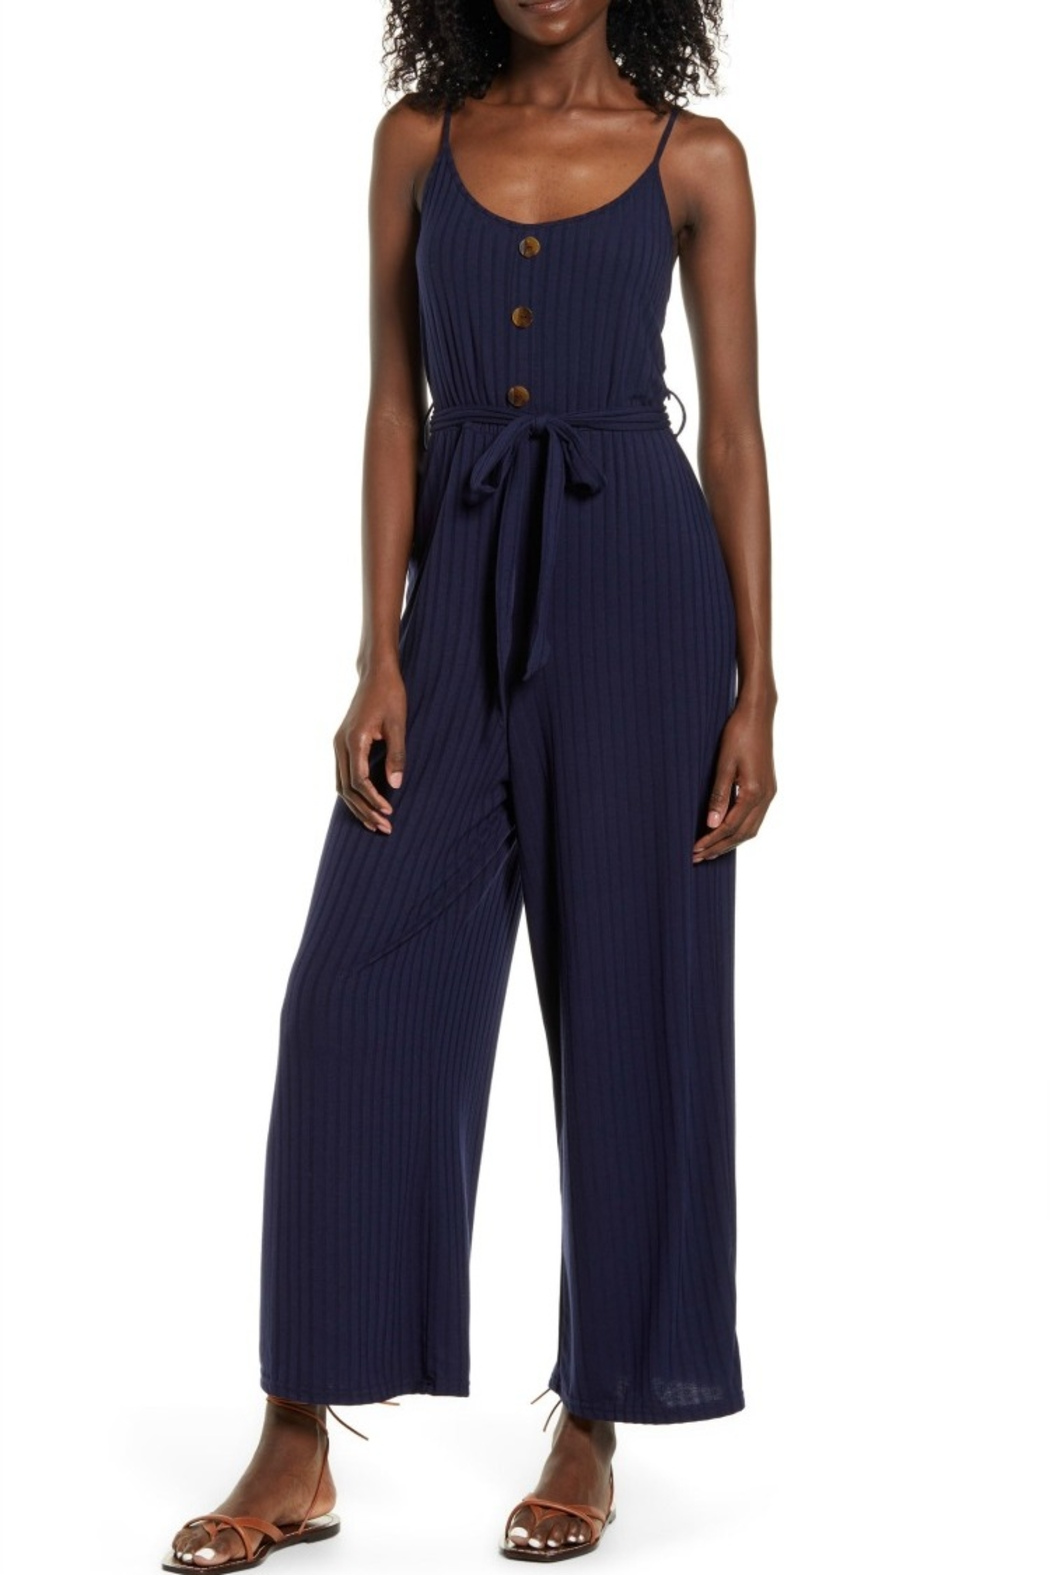 Band Of Gypsies JOURNEY JUMPSUIT - Main Image